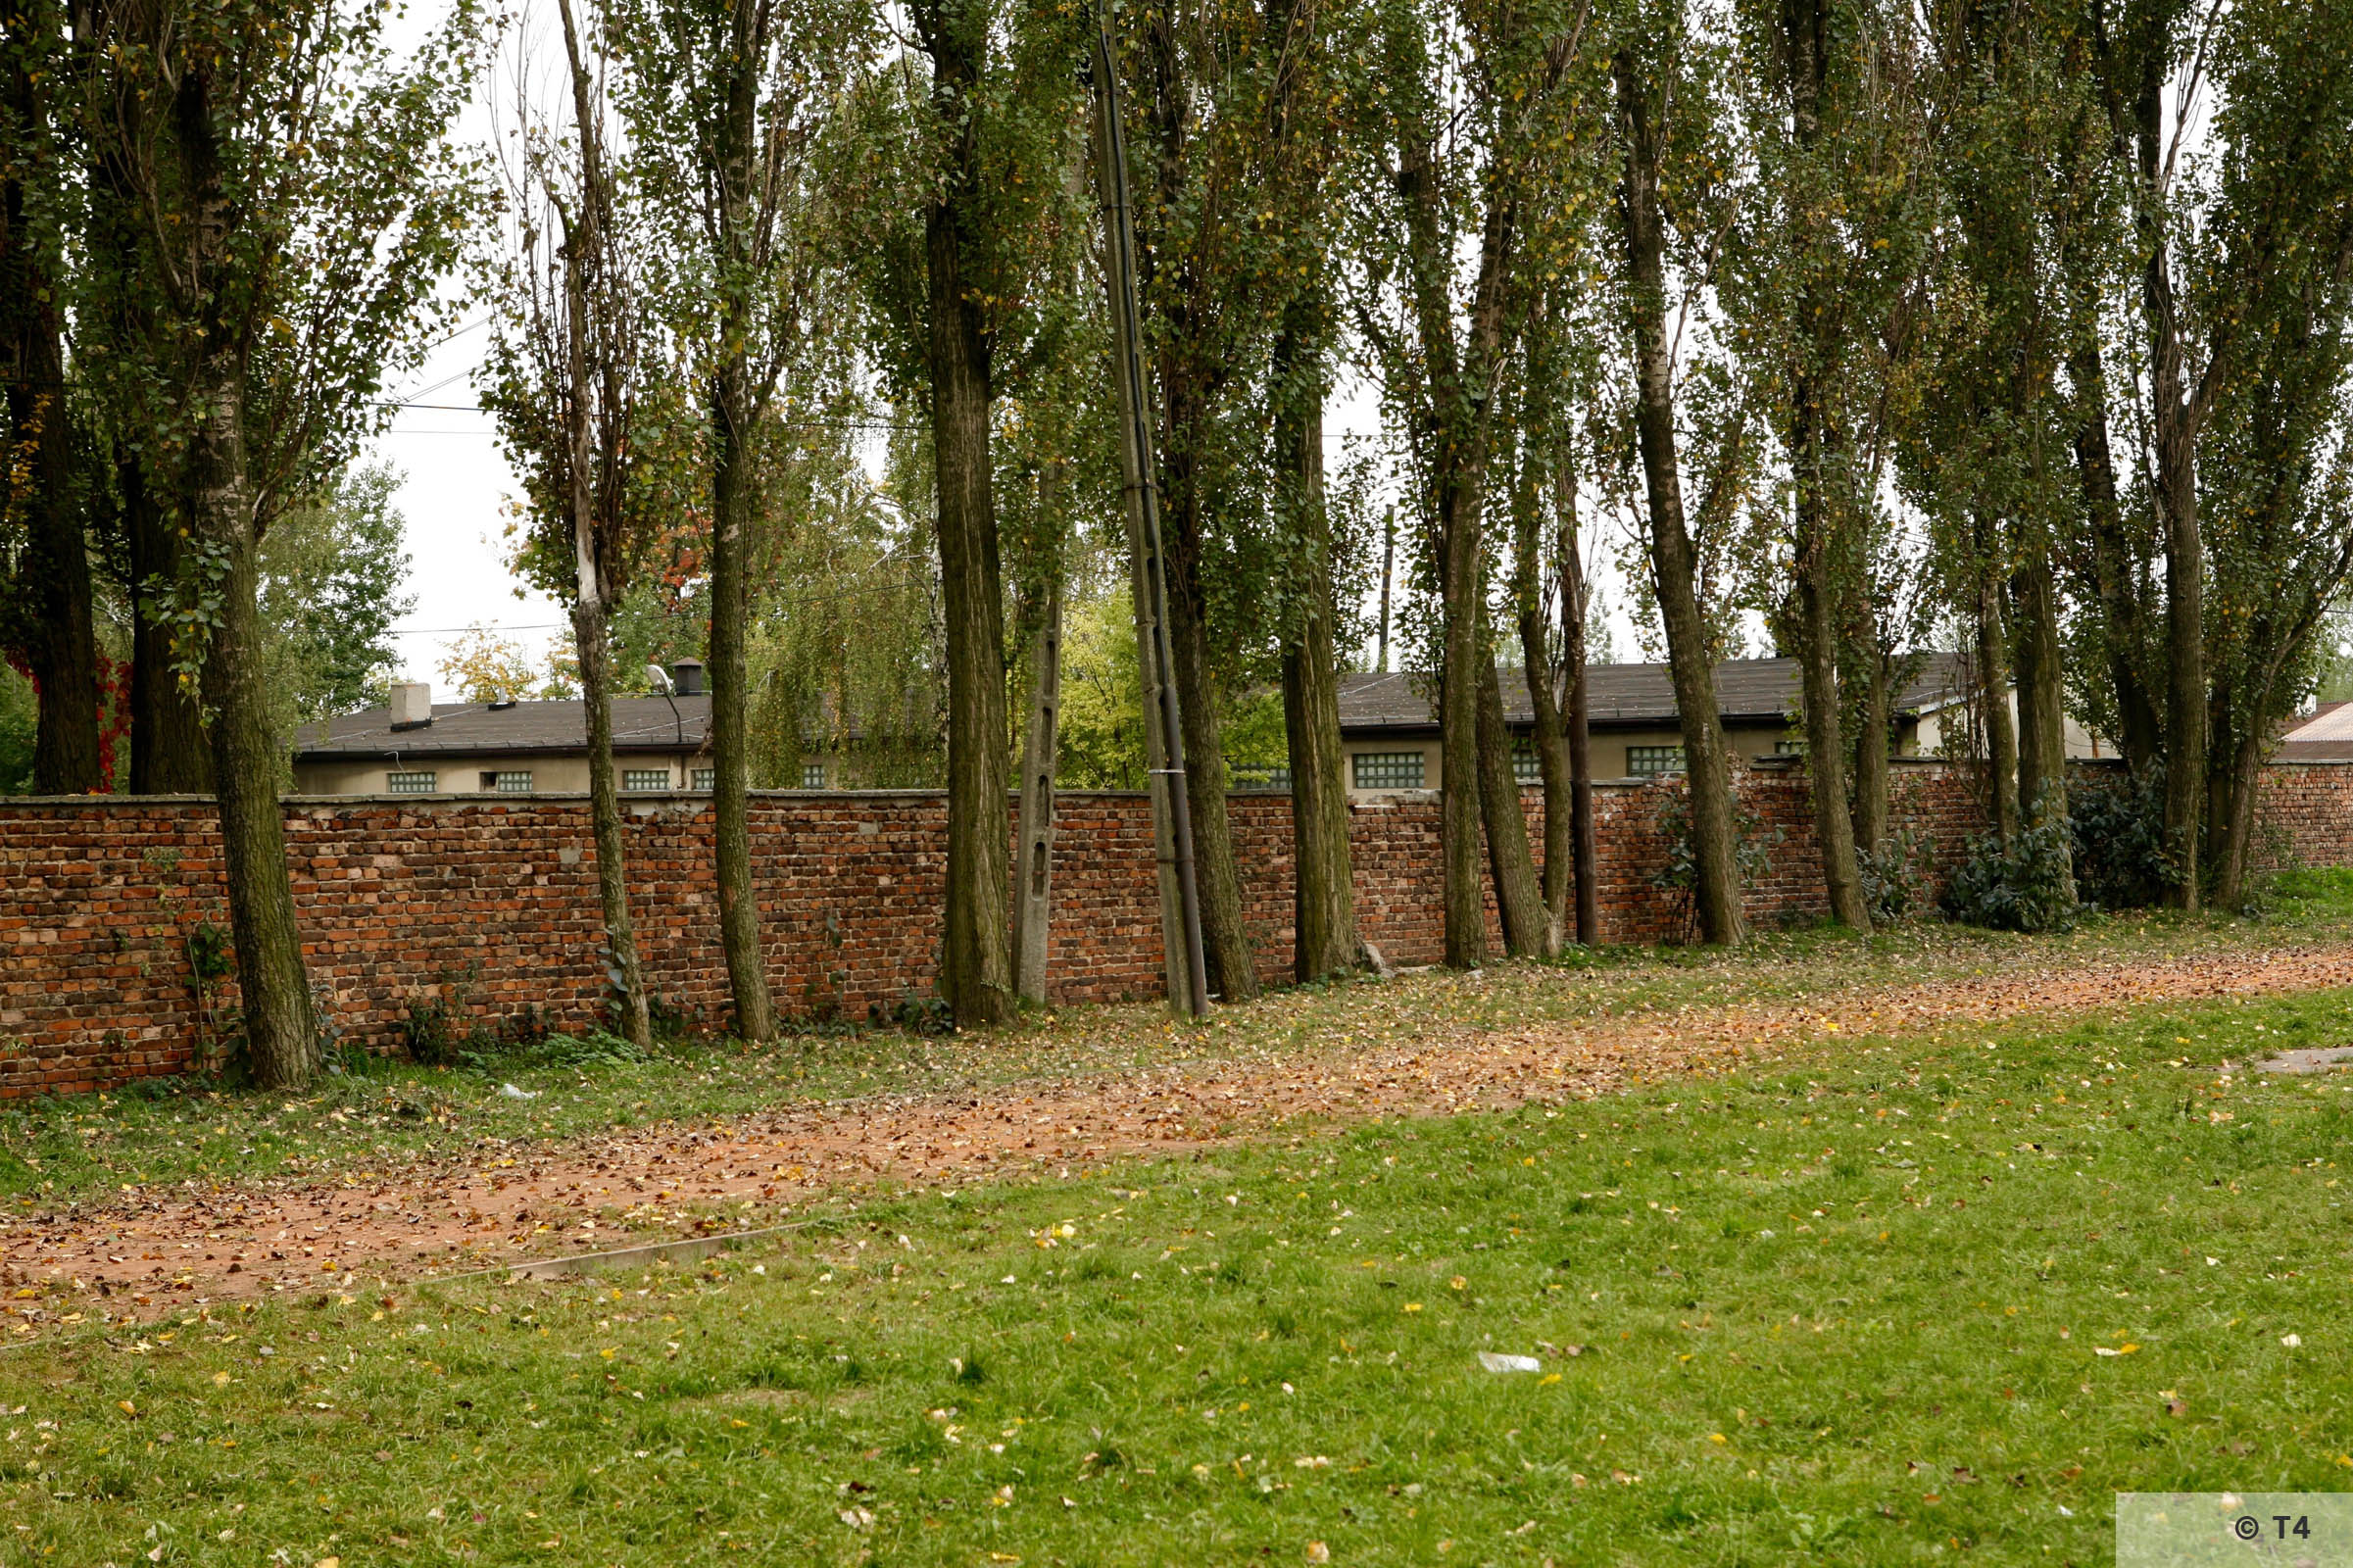 Wall surrounding the area of the former sub camp Lager Günther III. 2006 T4 2976